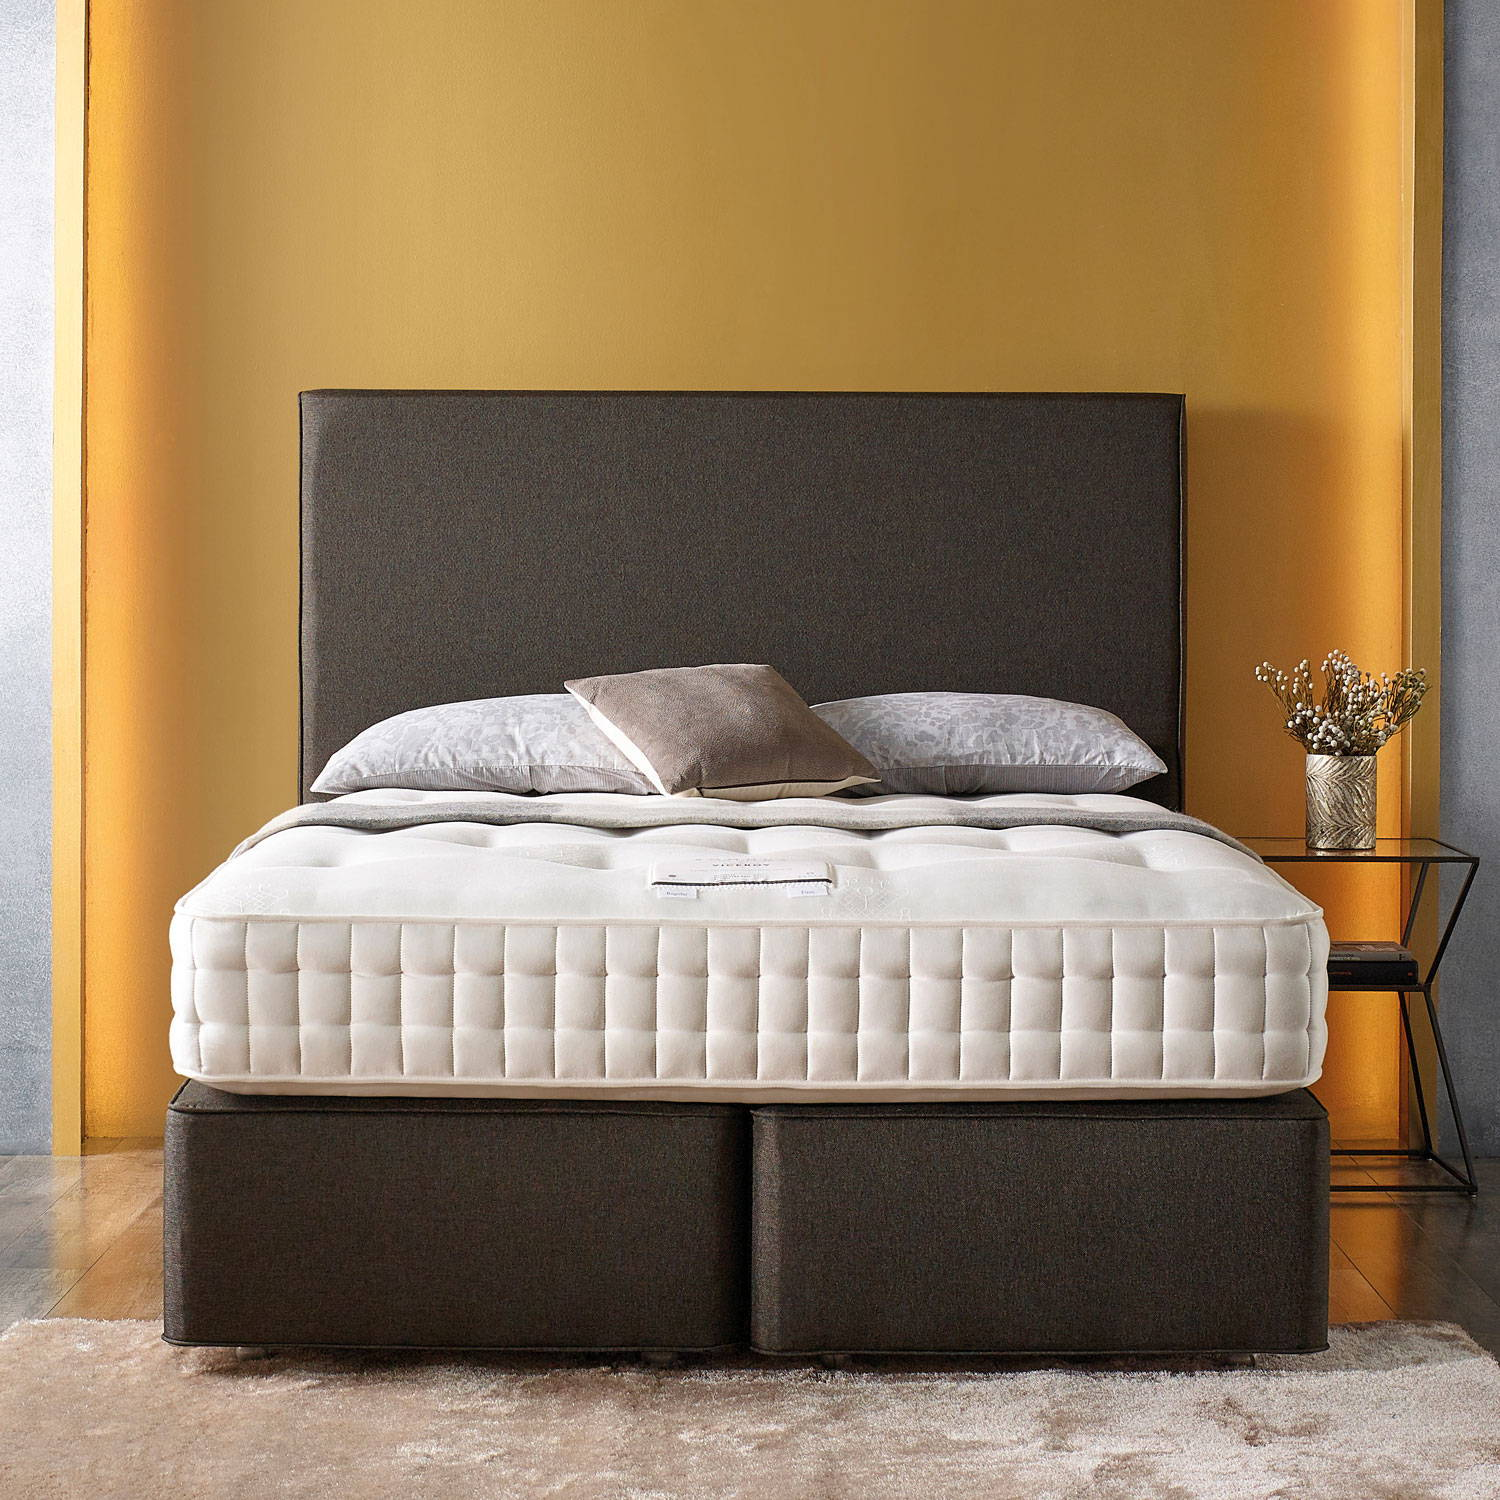 Somnus Beds At Better Furniture Norwich